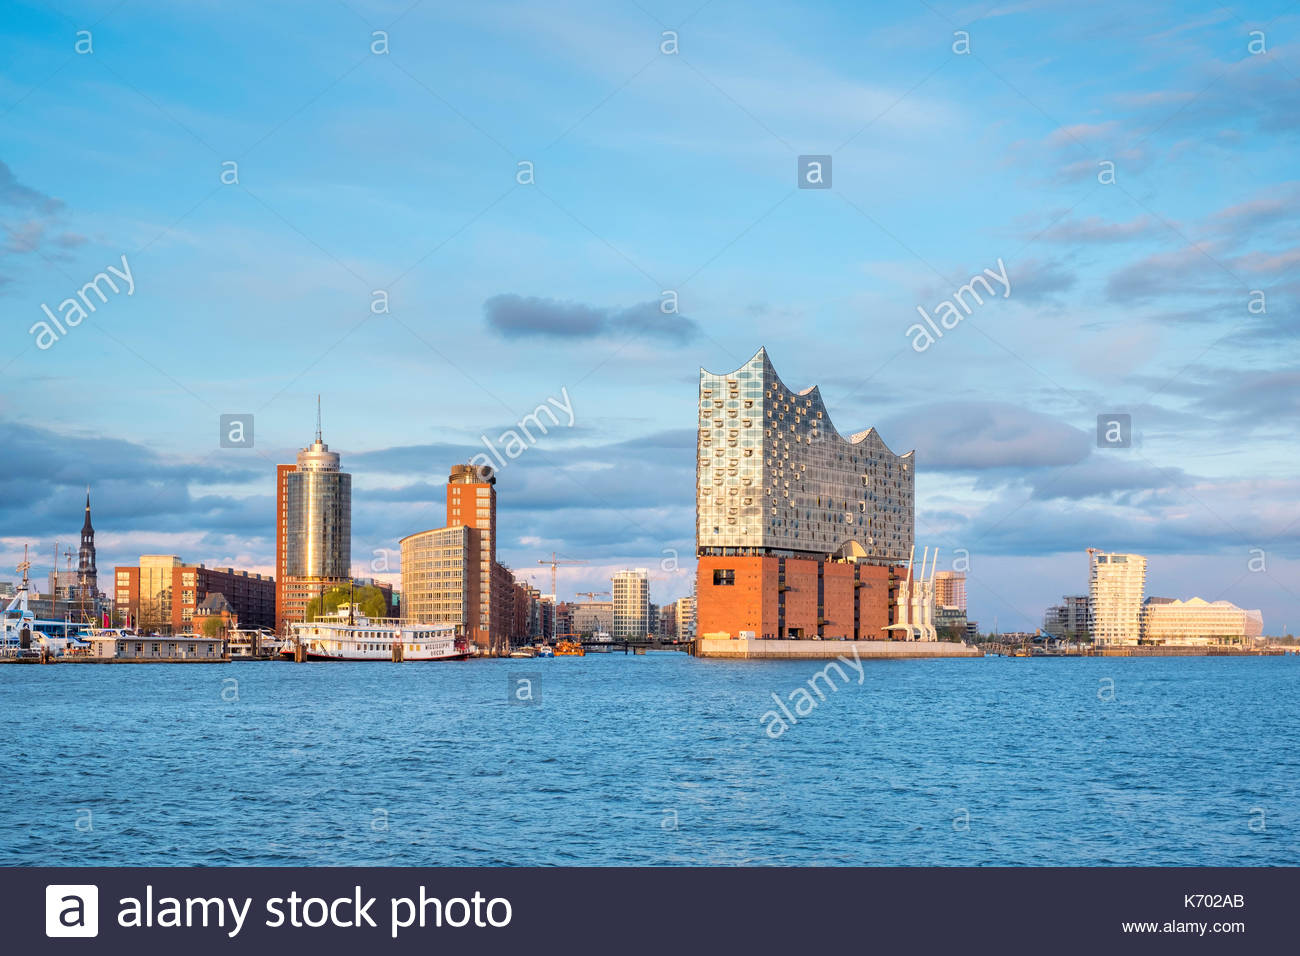 Germany, Hamburg. Elbphilharmonie (Elbe Philharmonic Hall) concert hall on the Elbe River and buildings in the HafenCity. - Stock Image